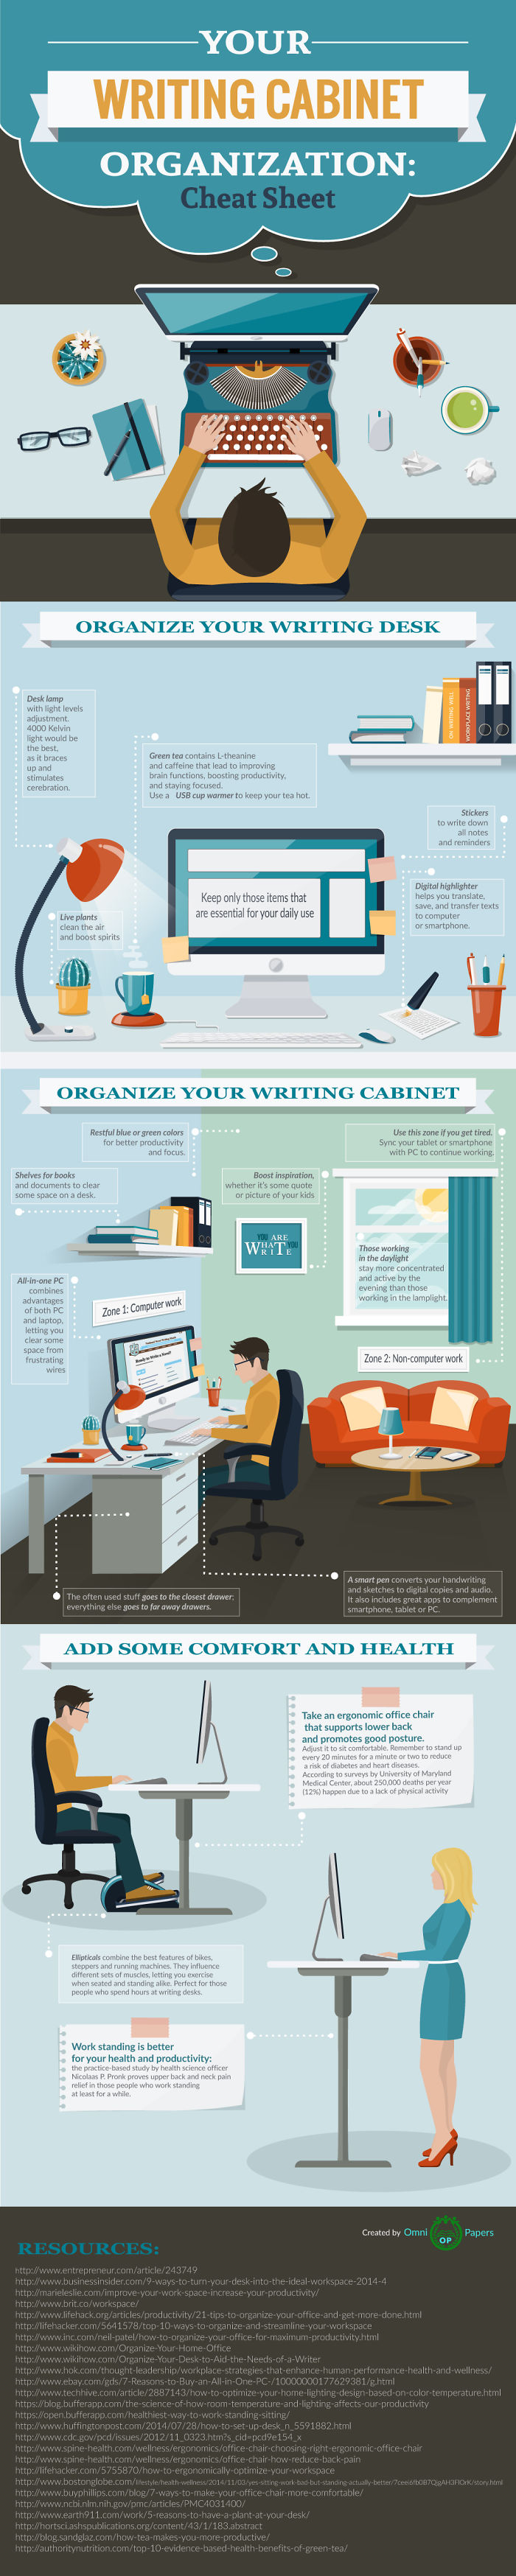 How To Organize You Home Writing Cabinet